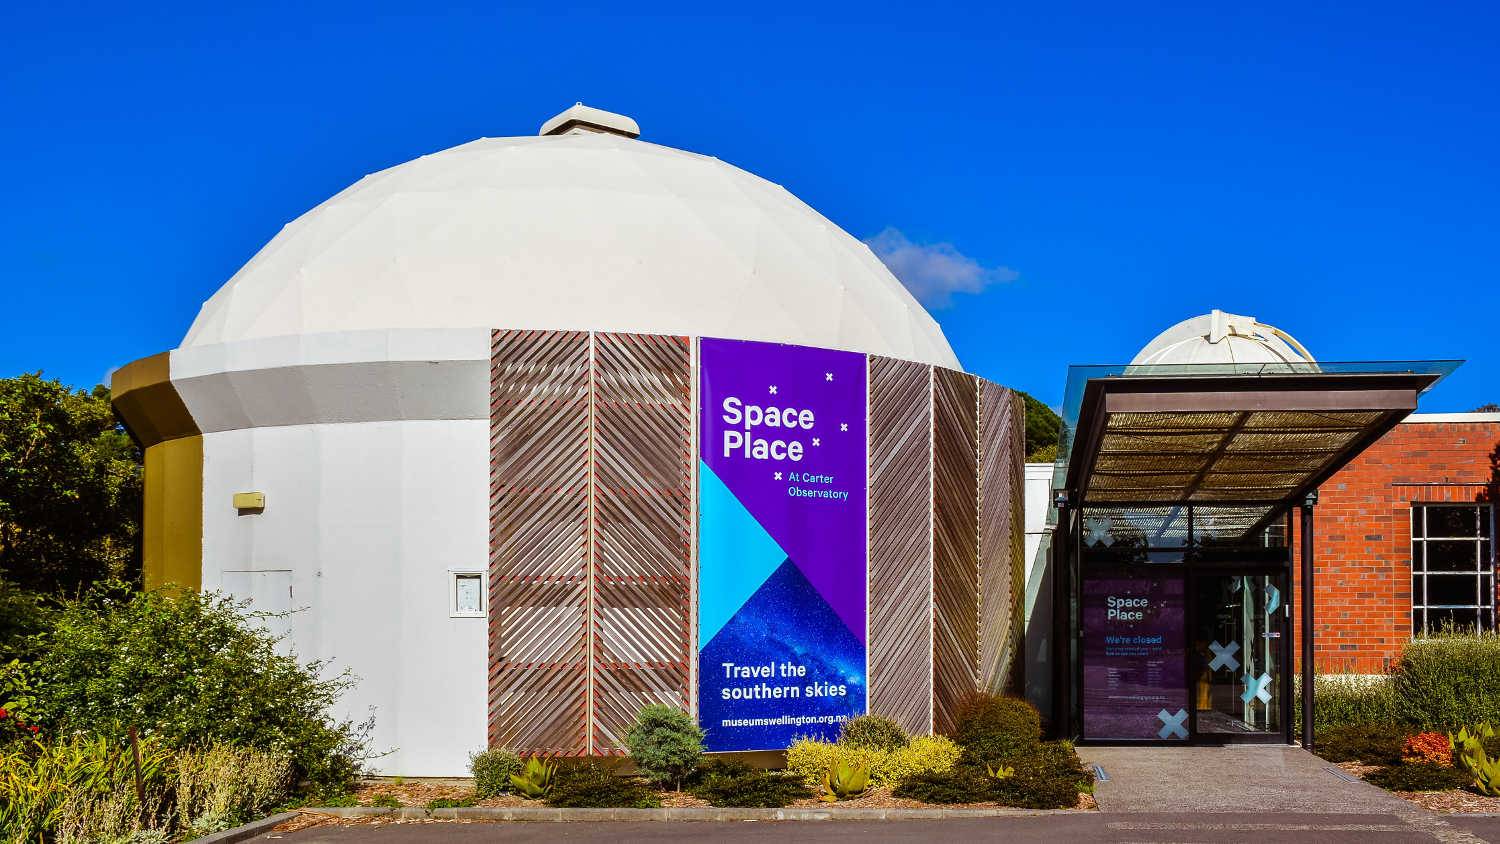 Space Place Observatory Museum